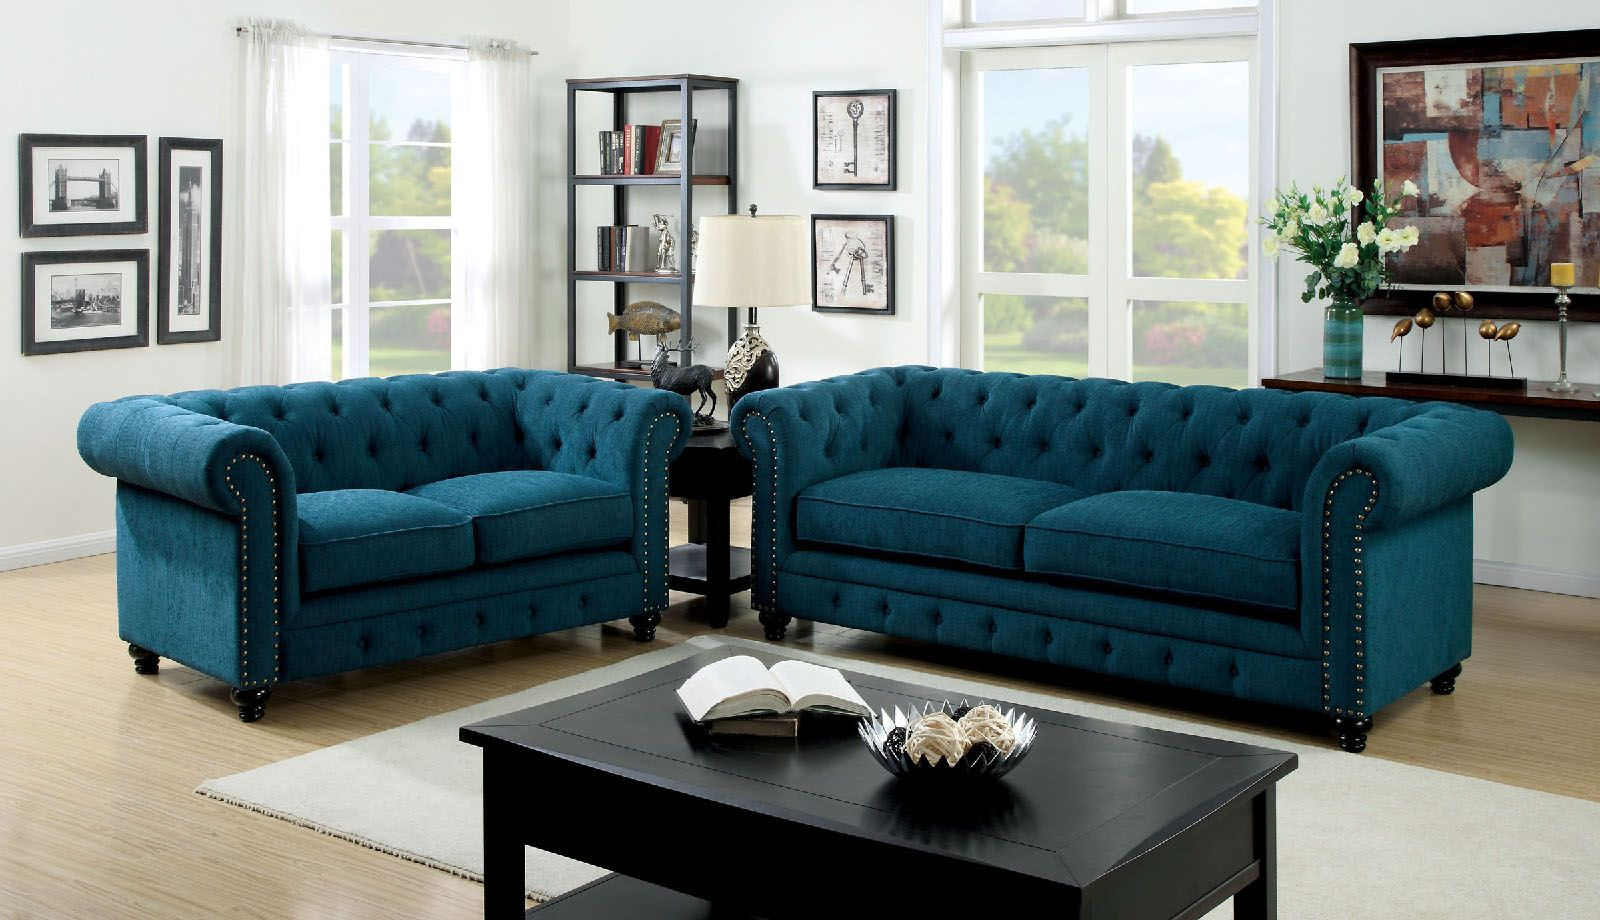 Best Blue Tufted Sofa 61 Sofas And Couches Set With Blue Tufted Sofa Cheap Living Room Sets Sofa Set Cheap Living Room Furniture